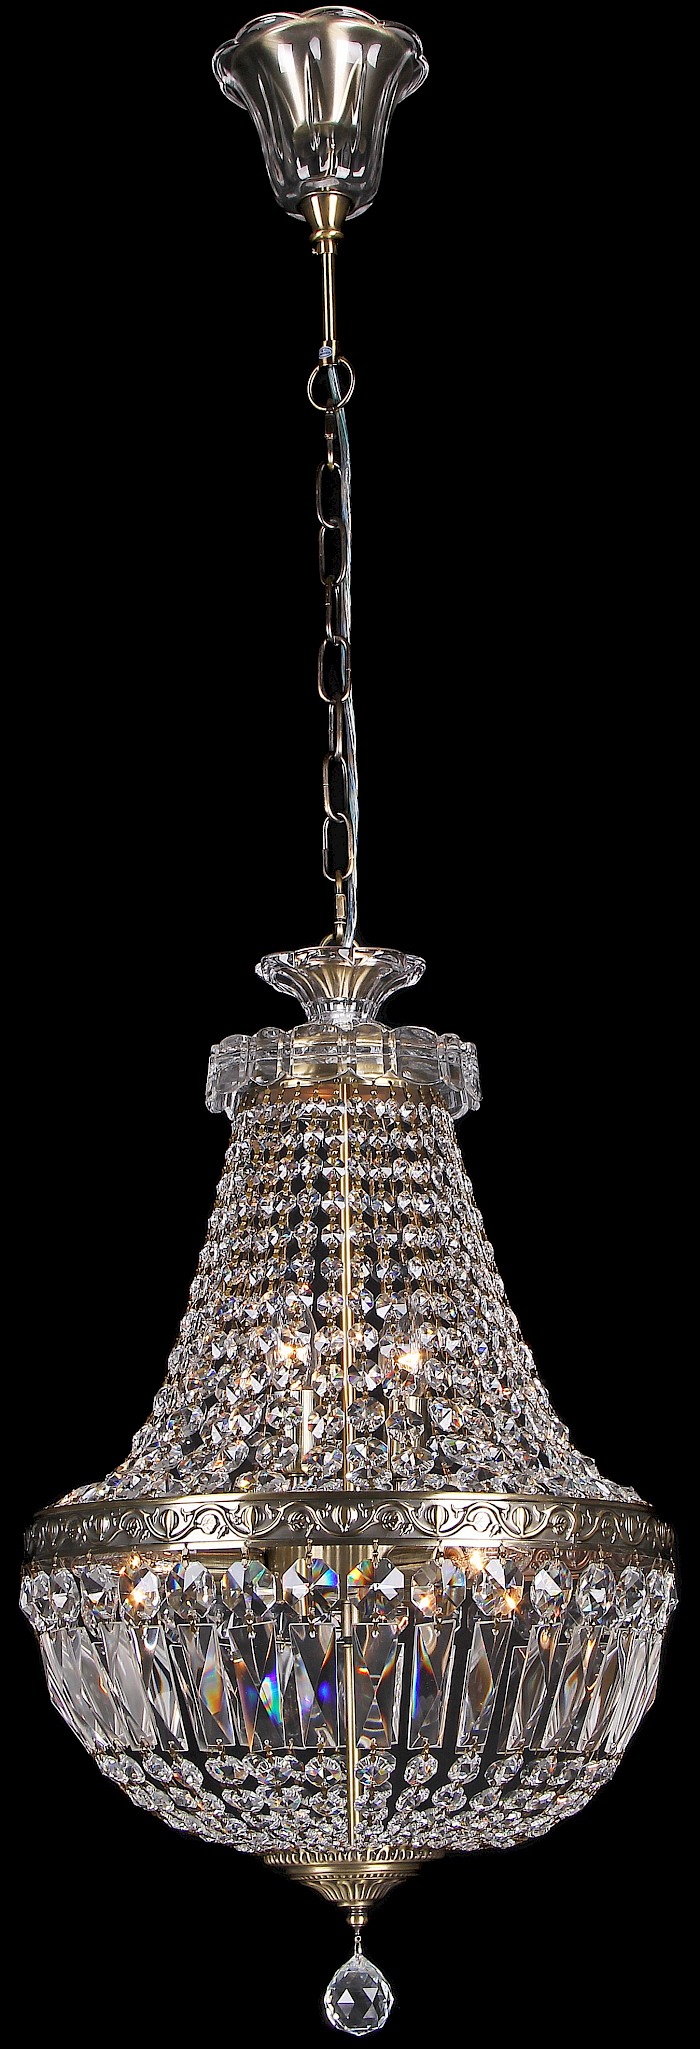 3 light basket chandelier